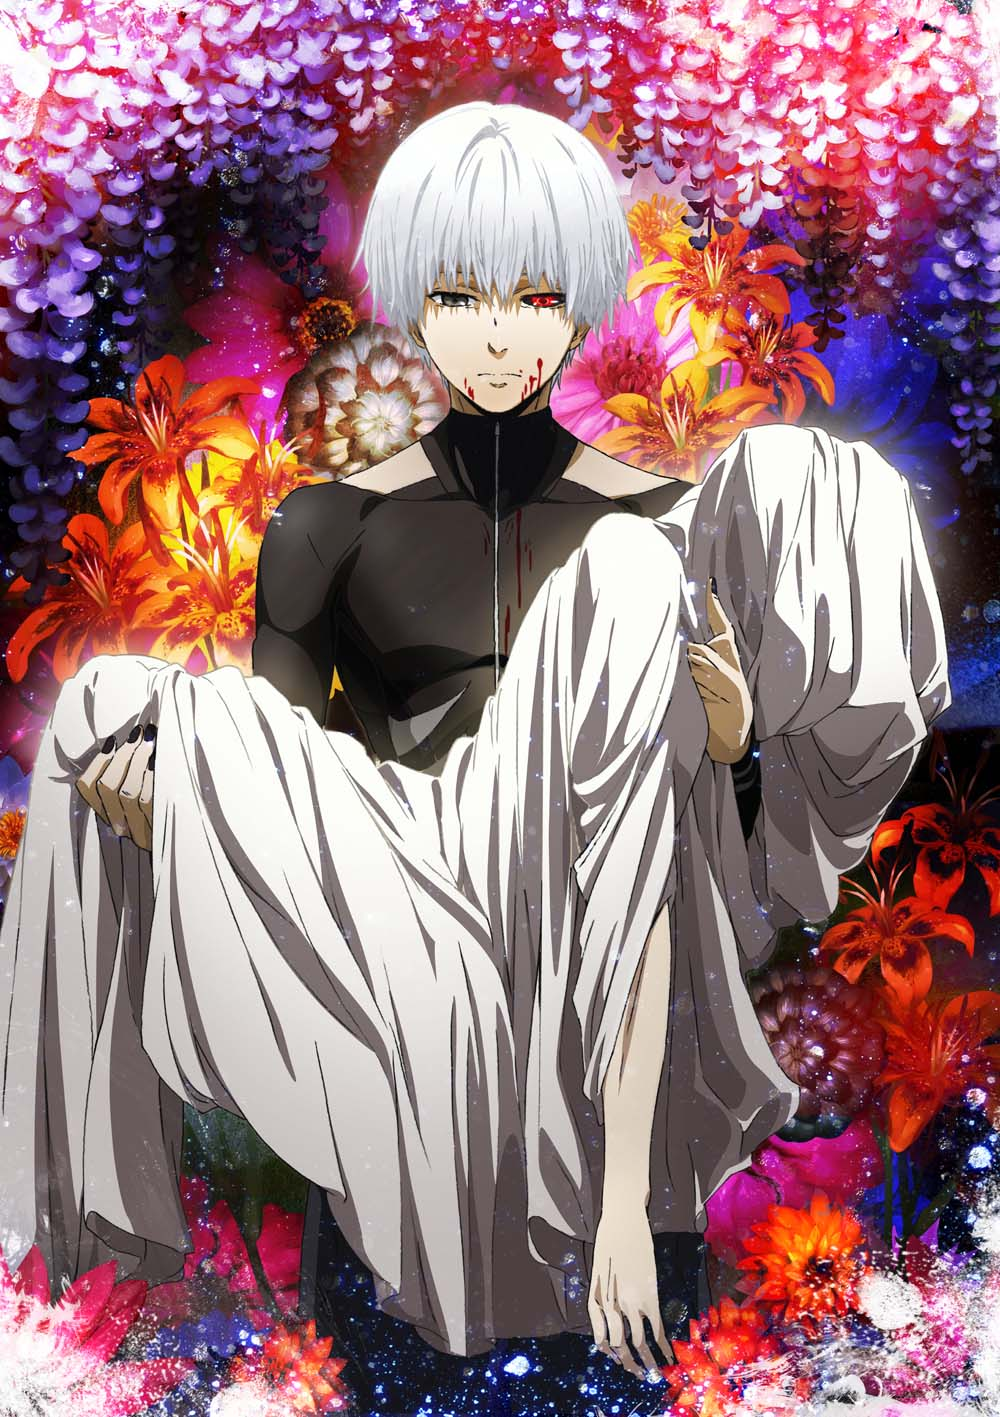 http://vignette4.wikia.nocookie.net/tokyoghoul/images/7/73/TV_Visual_season_2.png/revision/latest?cb=20141203210634